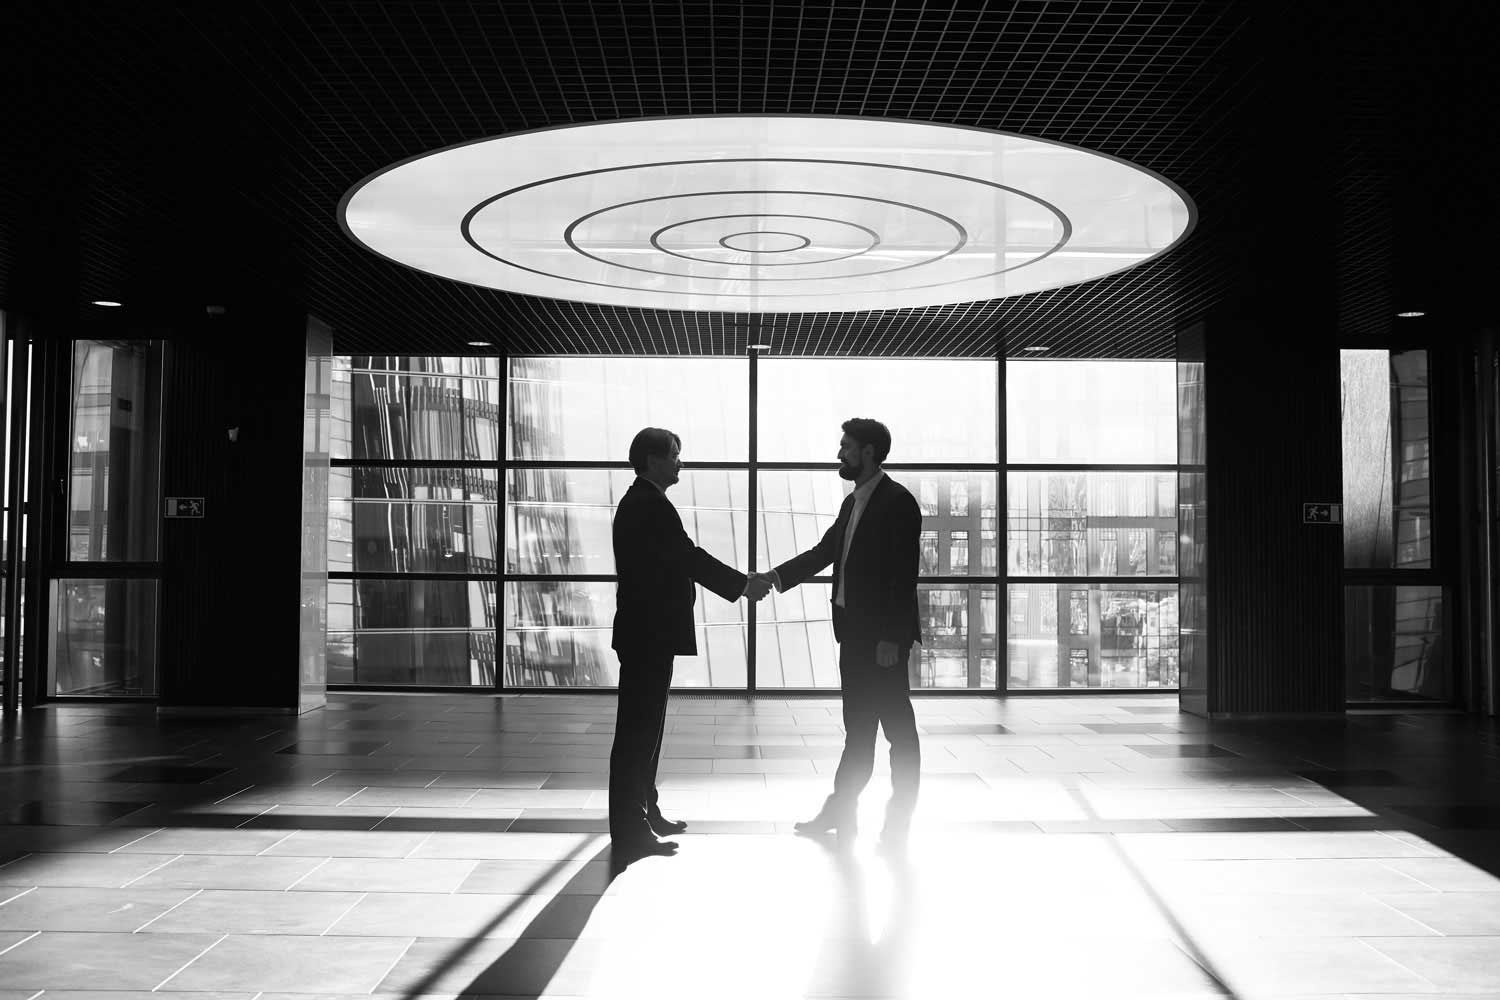 Cybersecurity M&A Report, Vol. 4, No. 1: Five Deals Worth $1 Billion+ Each Recorded In Early 2020